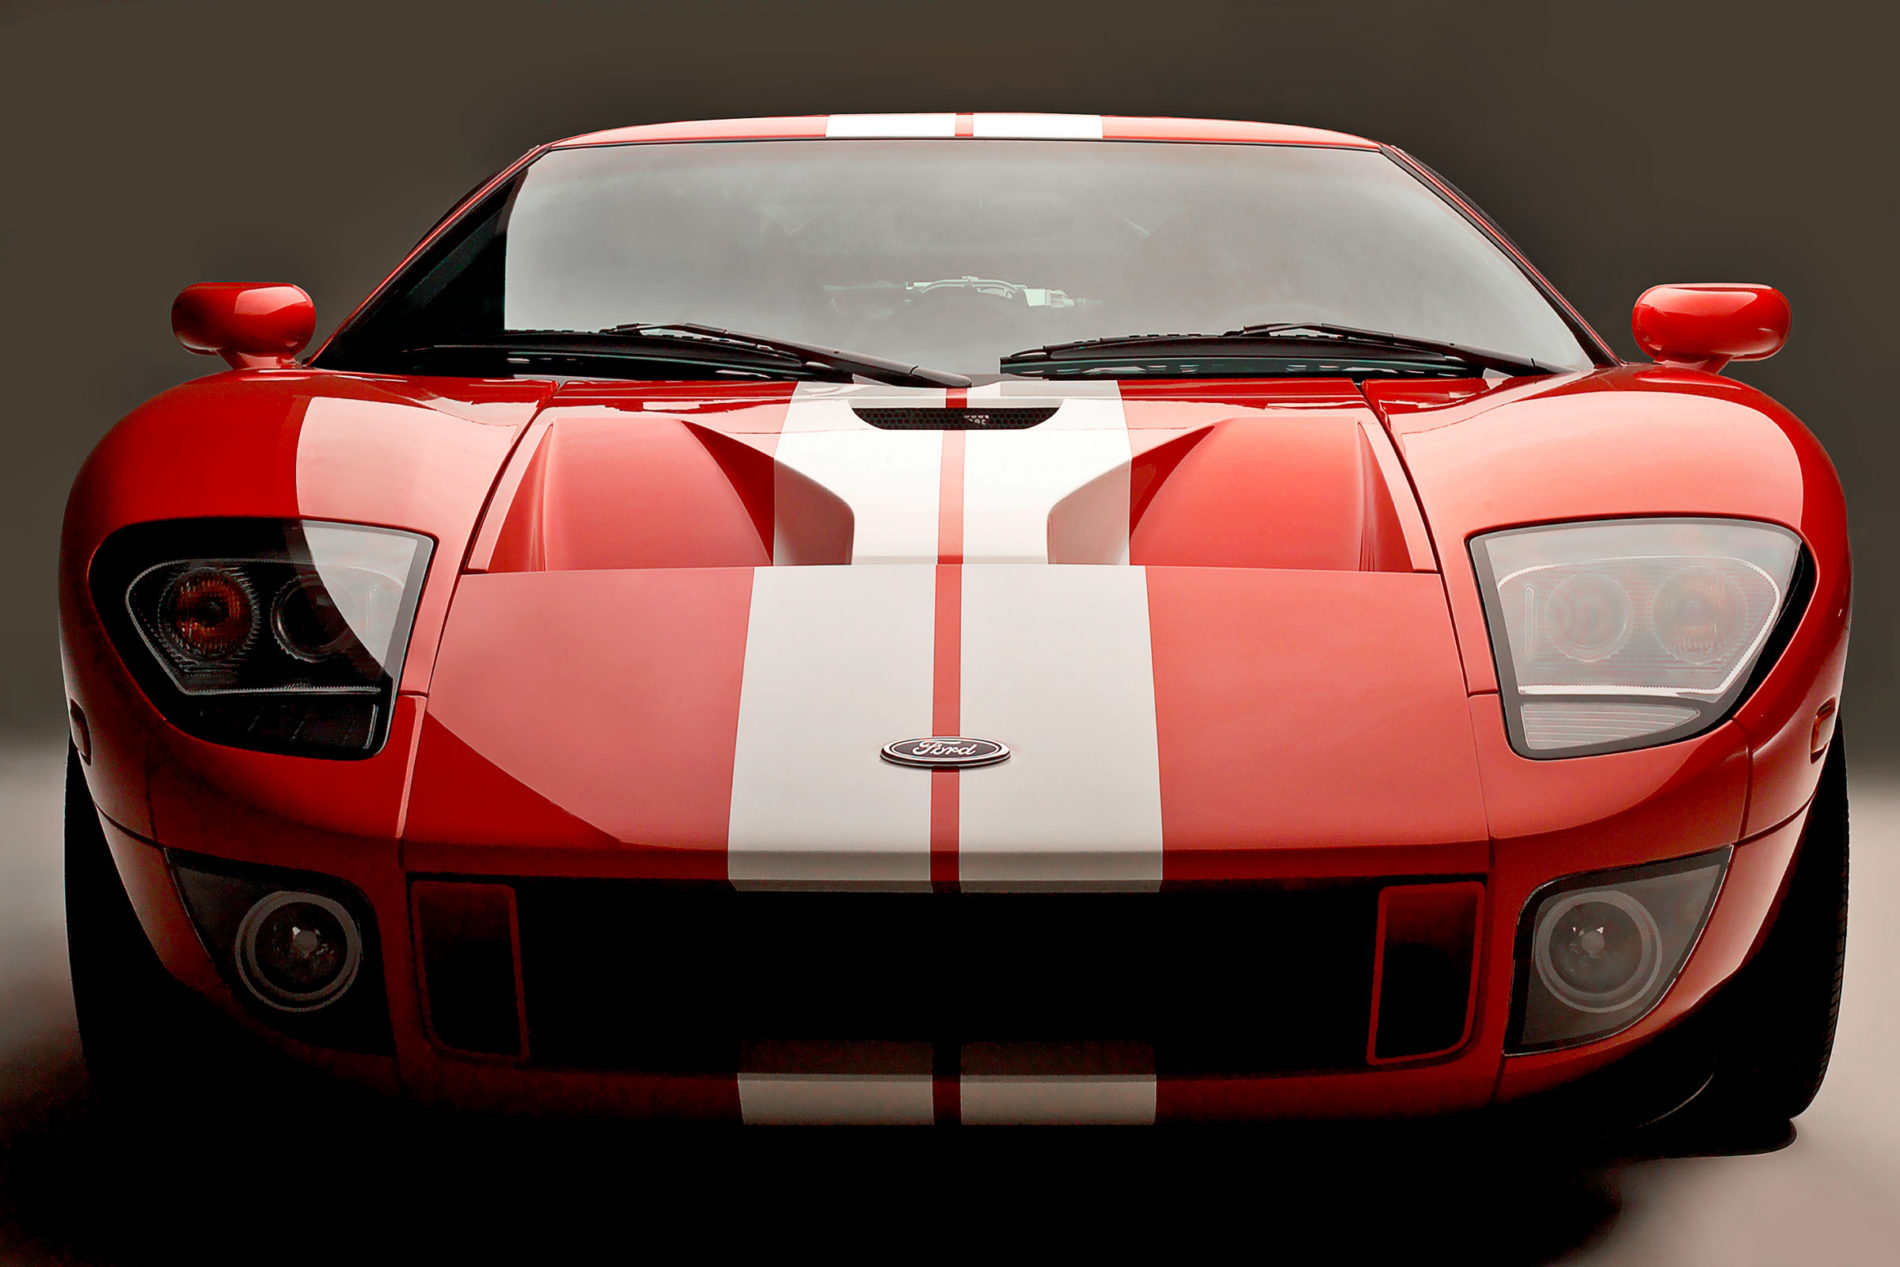 Ford GT photographed using our car light in Tulsa Oklahoma